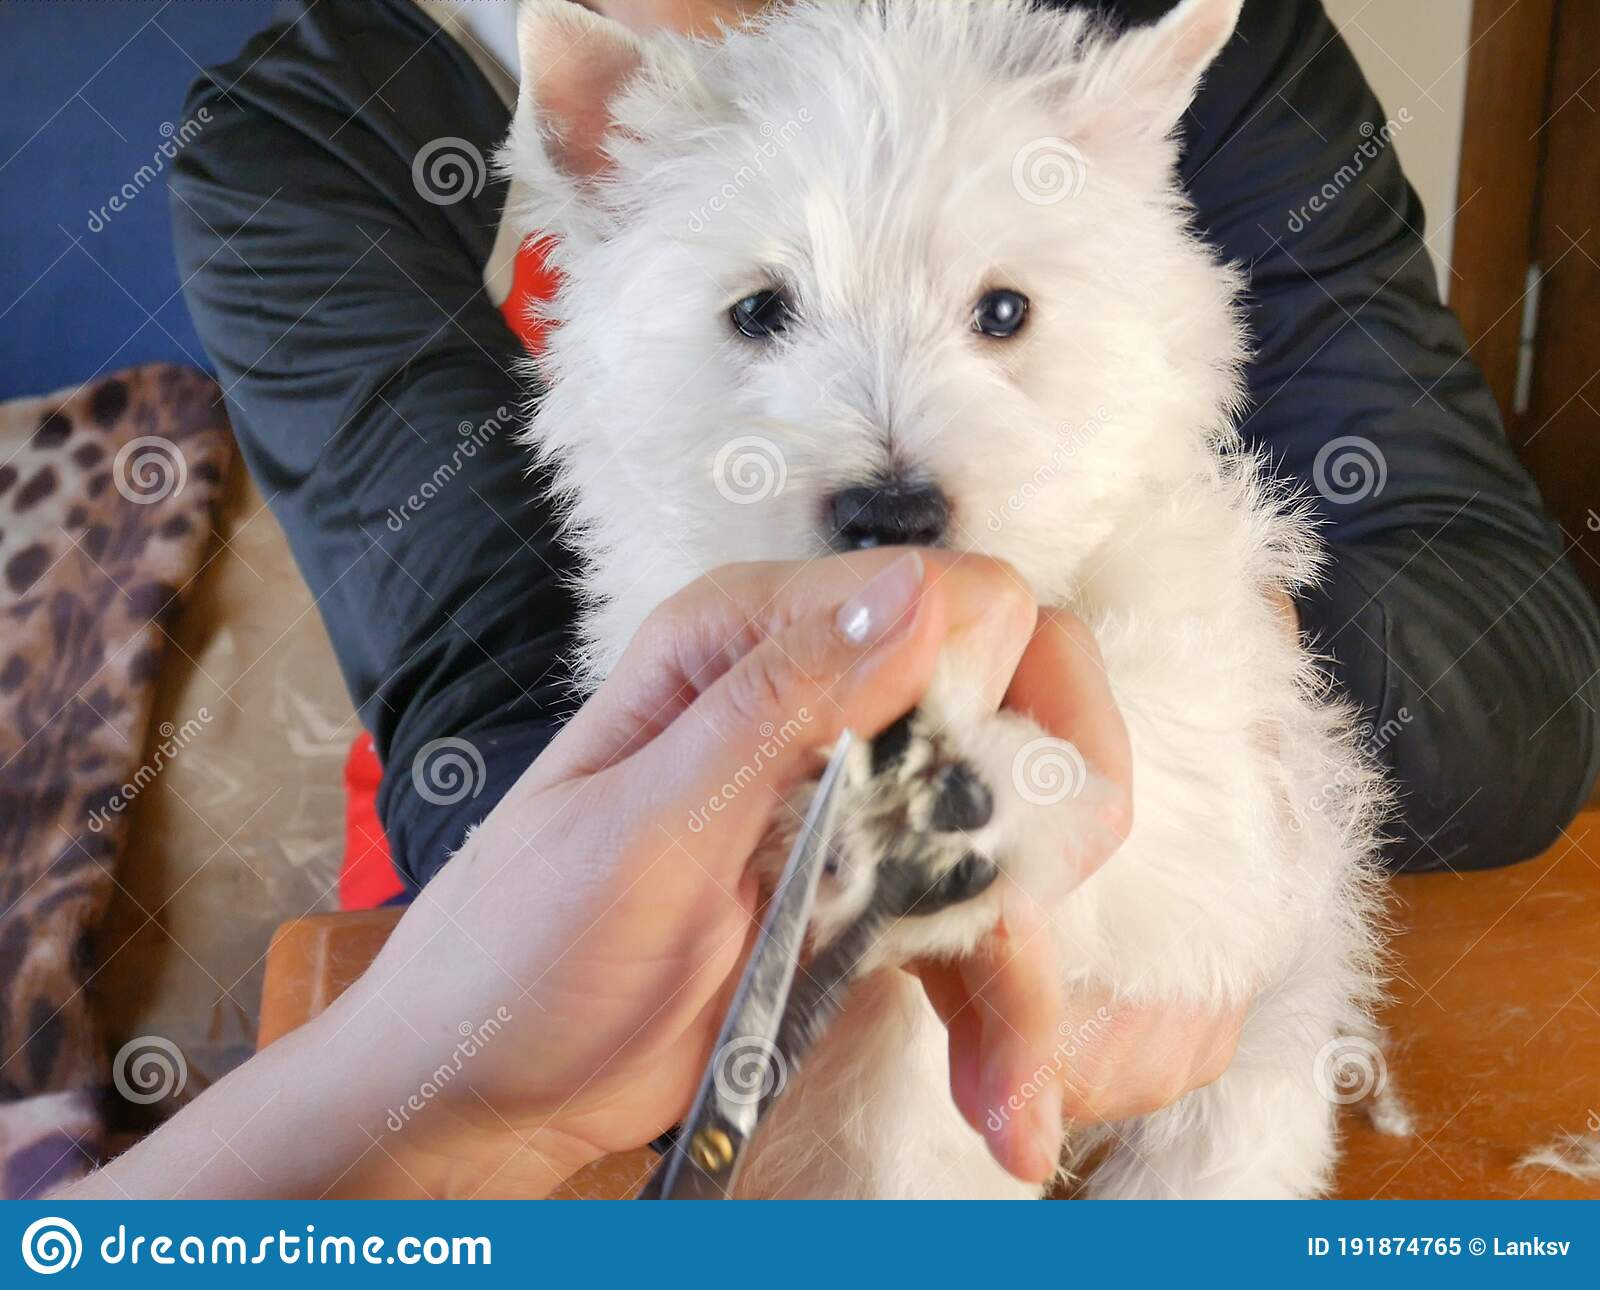 White West Highland Terrier Dog Haircut Stock Image Image Of Beauty Cute 191874765